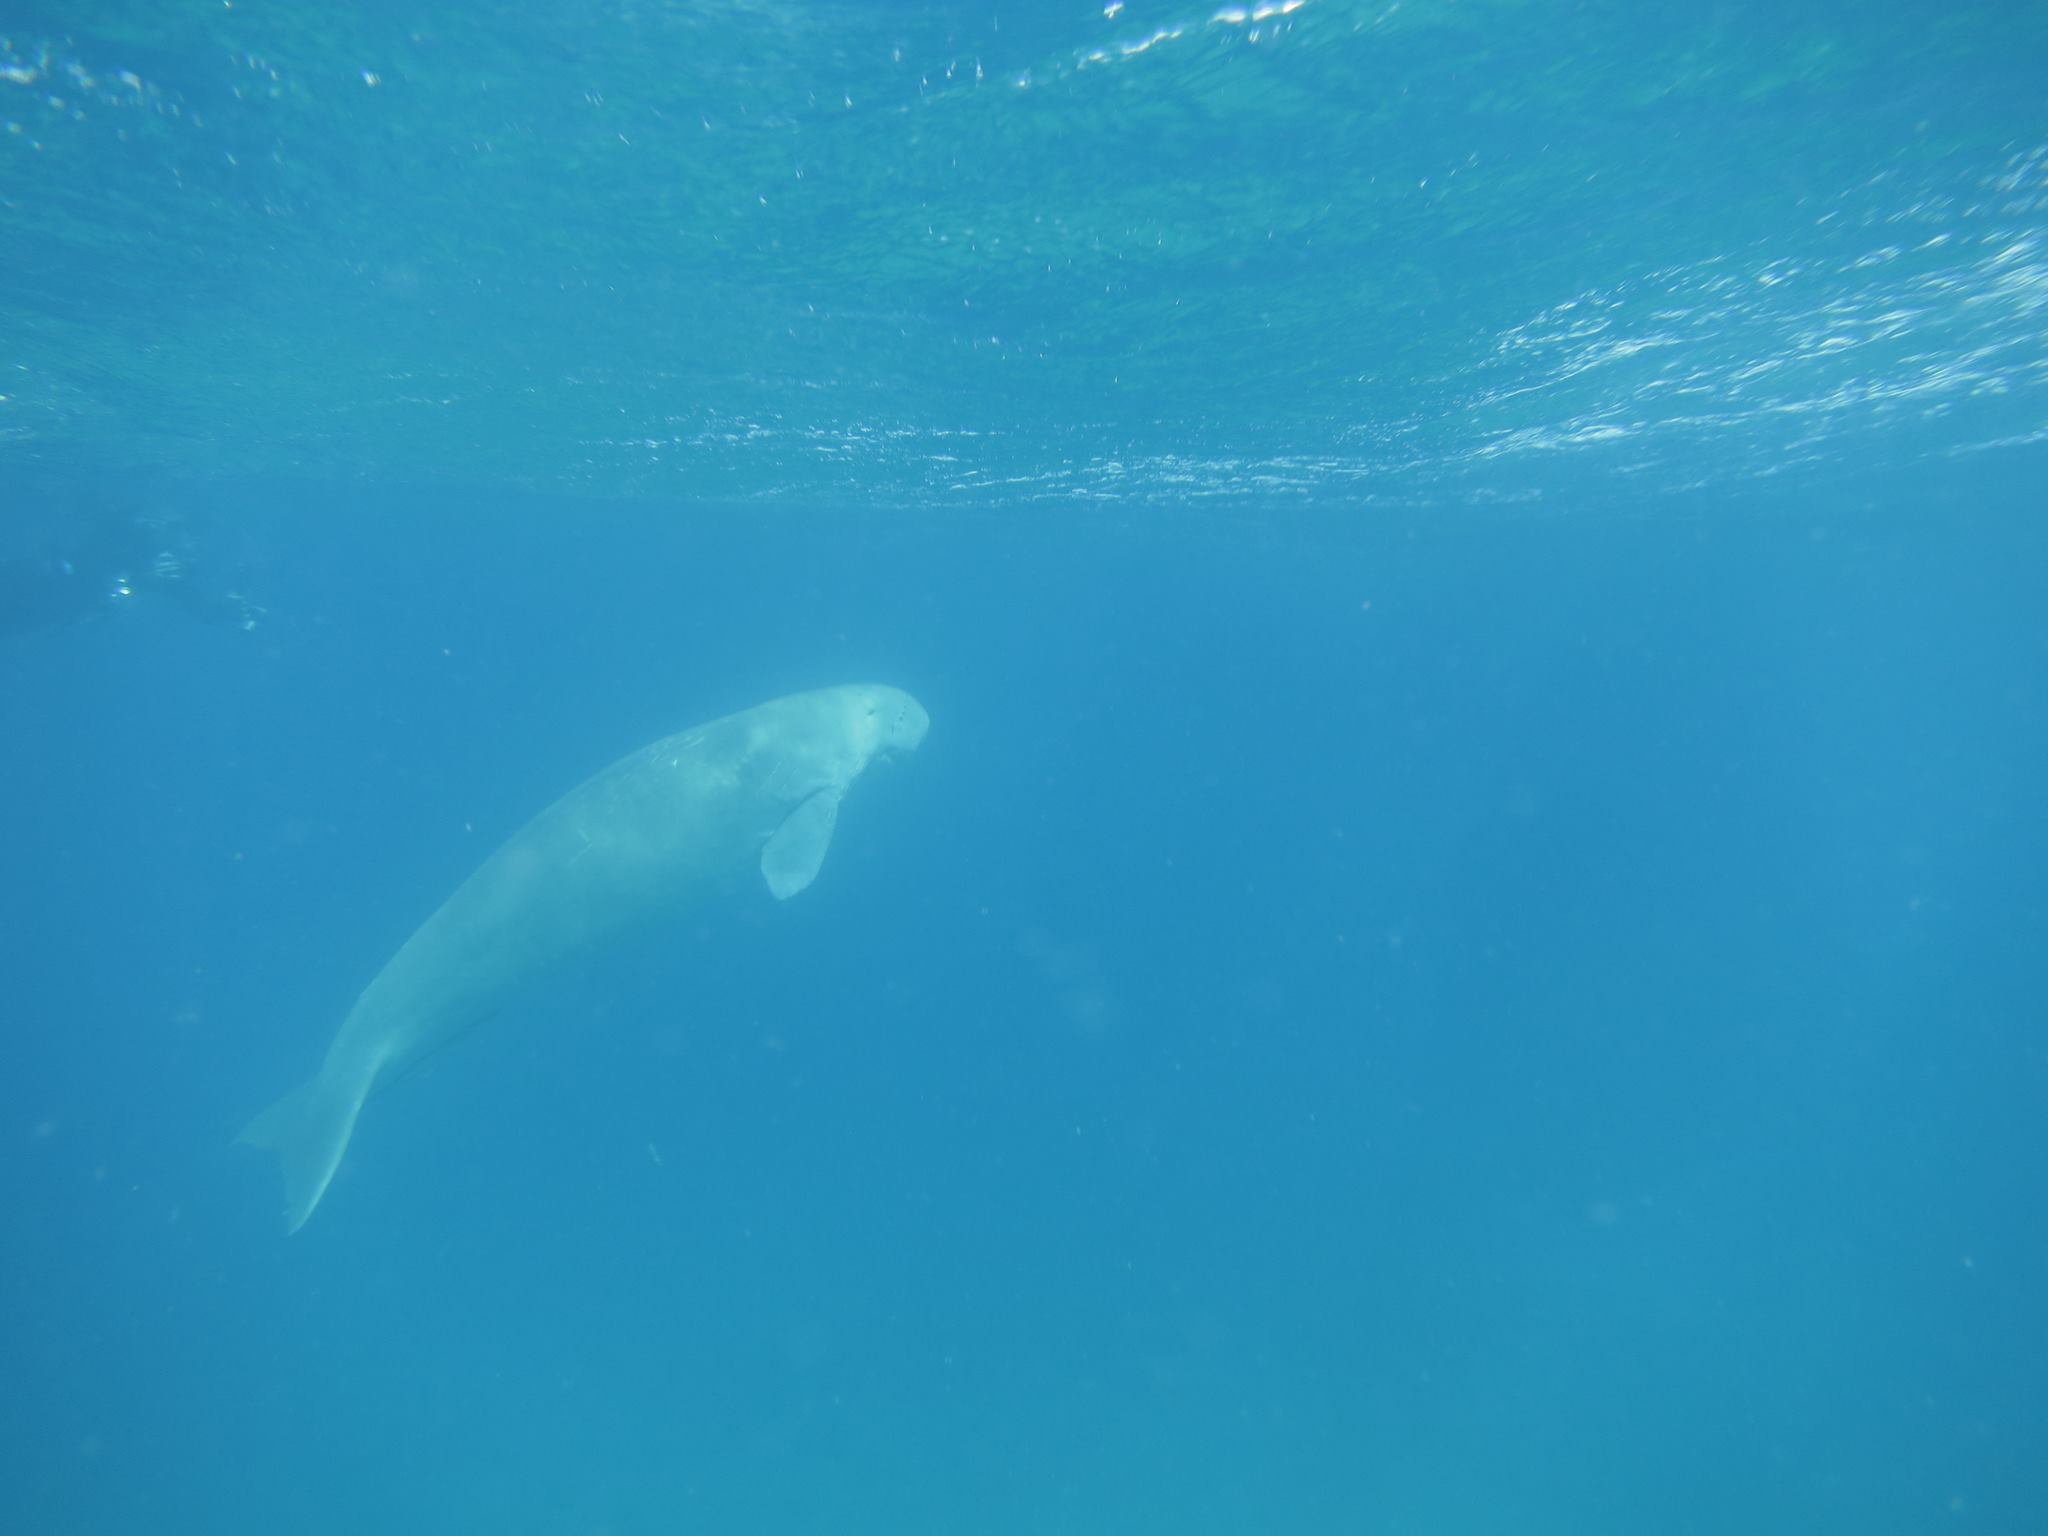 How to swim responsibly with dugongs